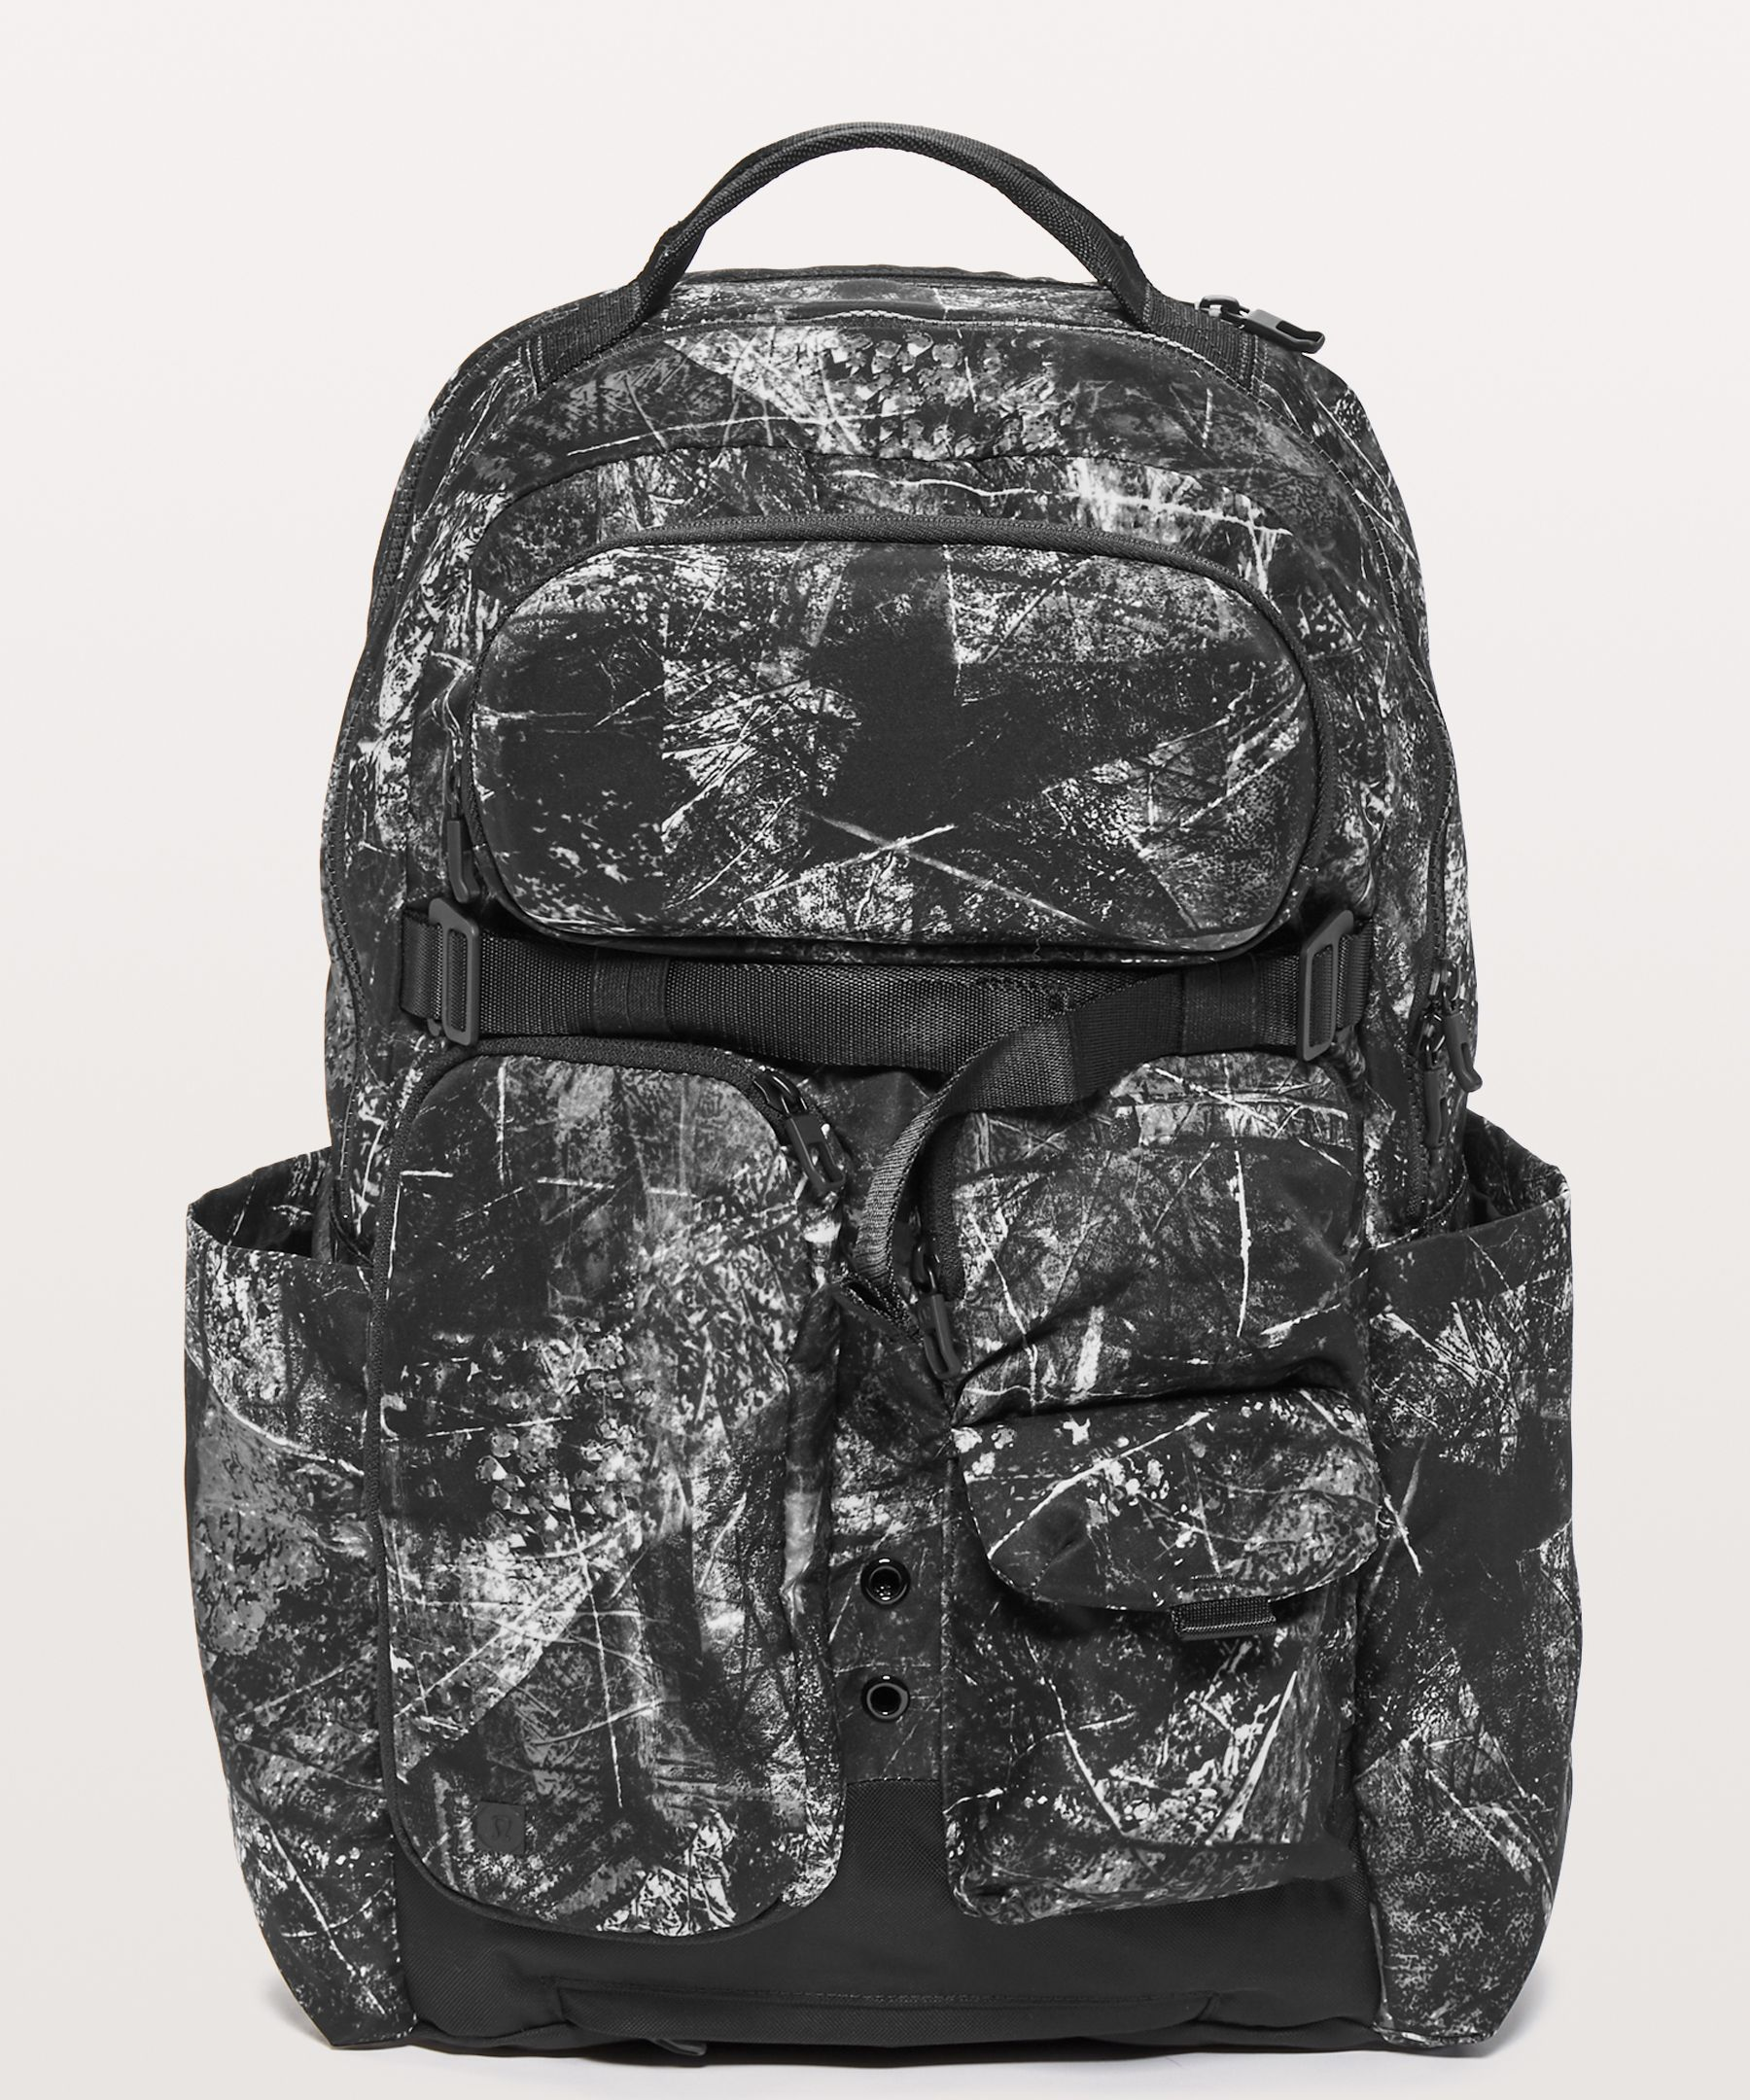 8492923ca6c5 Cruiser Backpack. Final Sale